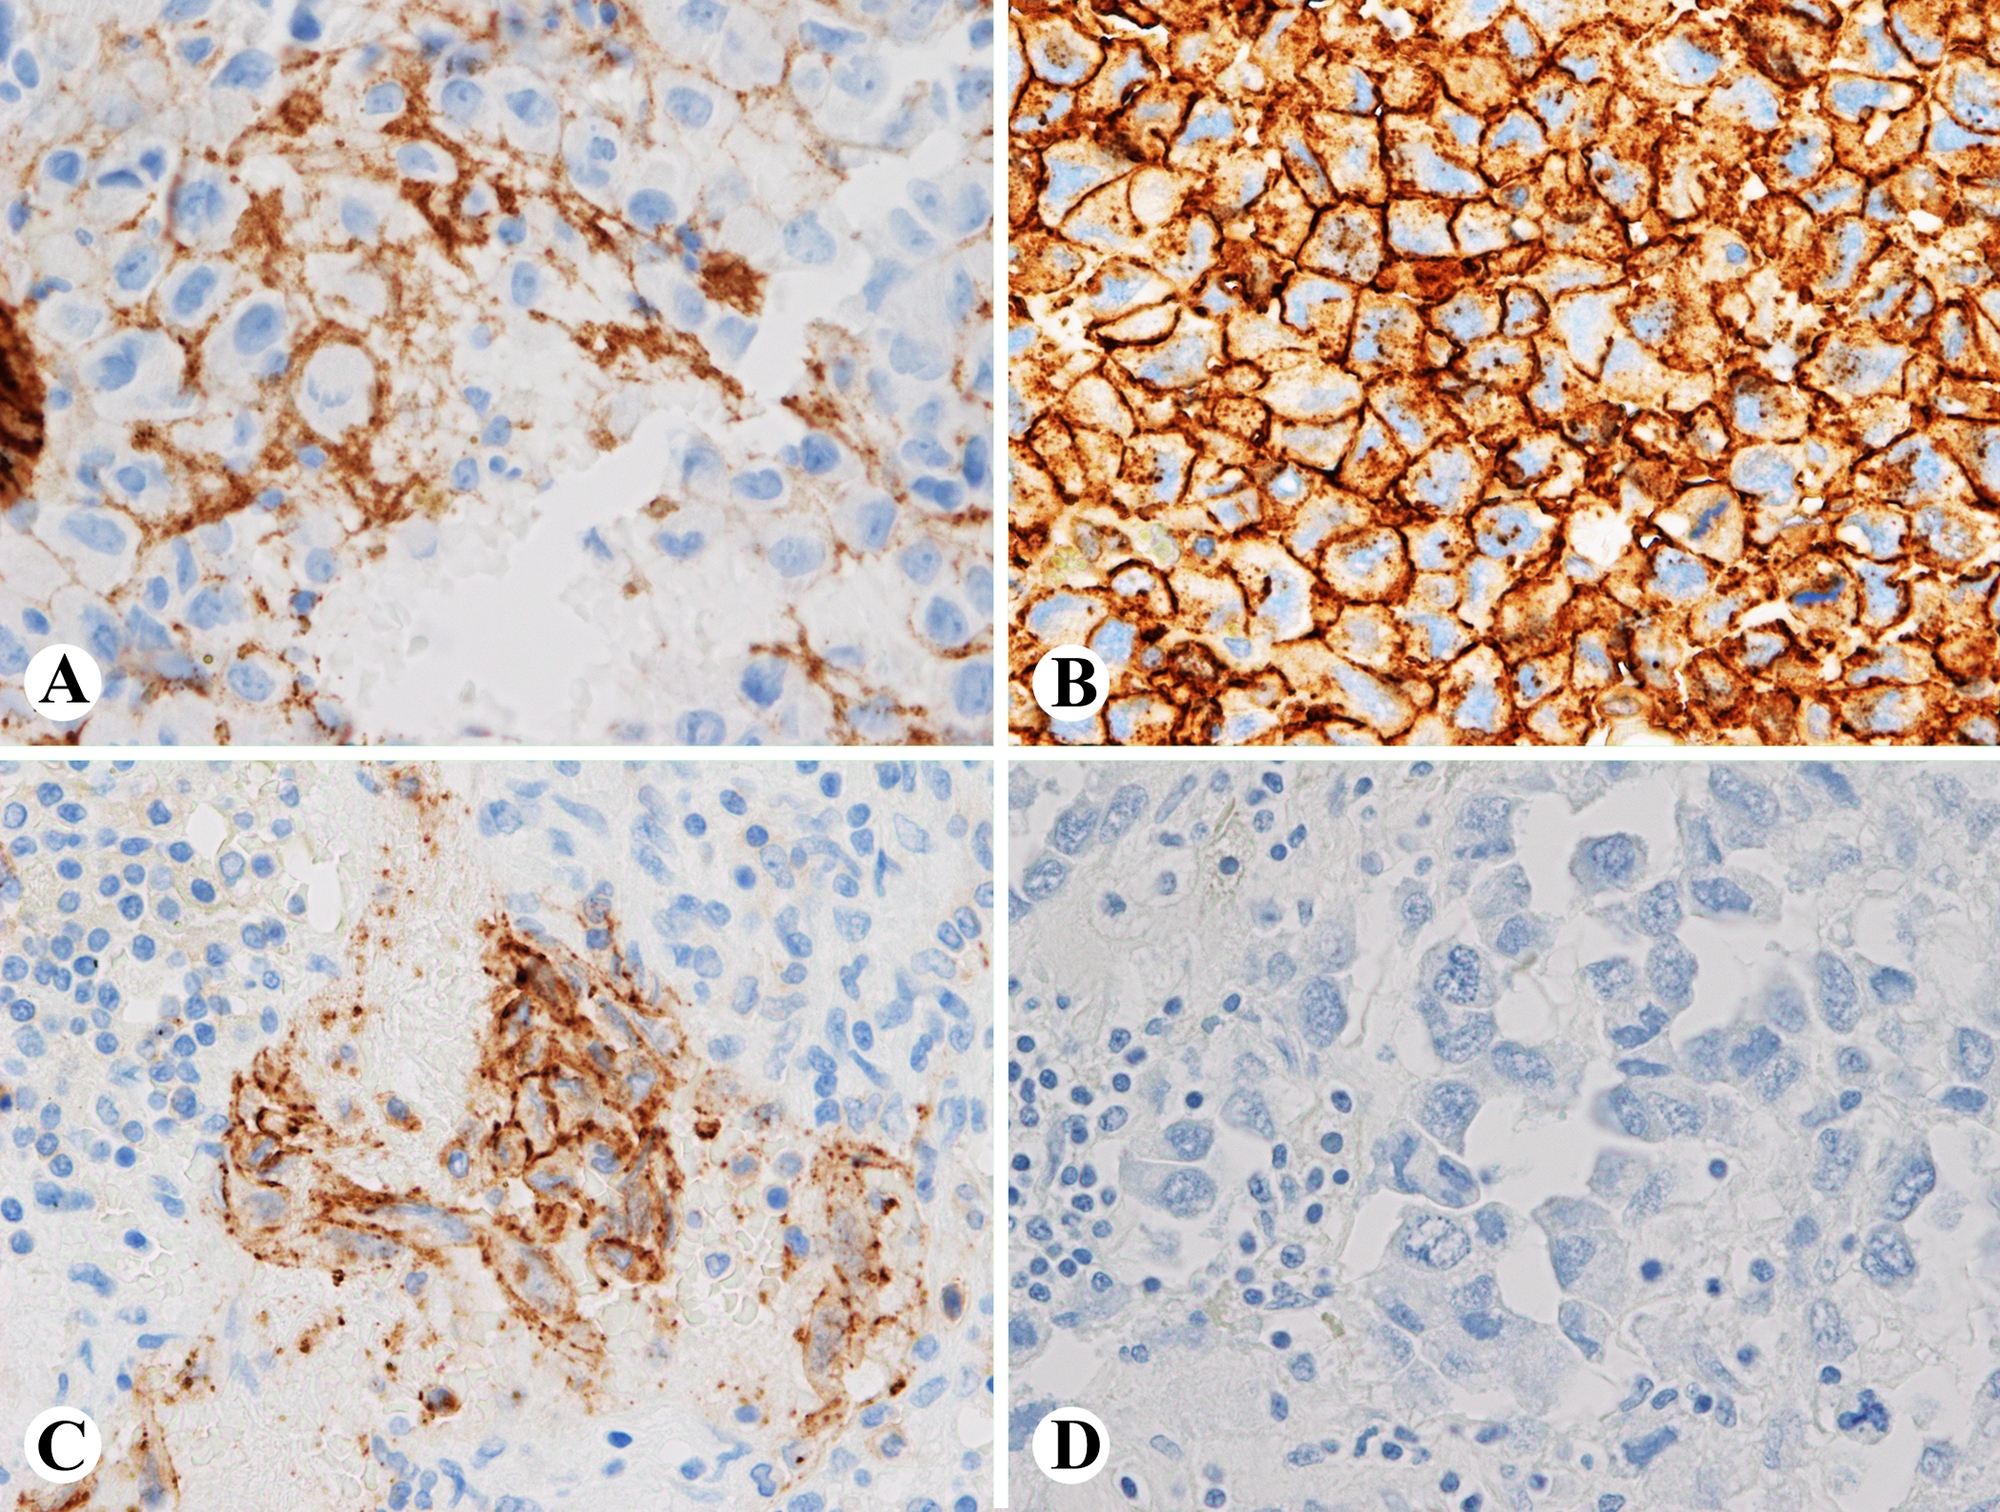 Immunostains-of-the-tumor-show-that-the-tumor-cells-are-positive-for-factor-8-(A),-CD34-(B)-and-focally-positive-for-CD31-(C),-negative-for-AE1/AE3-(D)-(A-D,-400x)